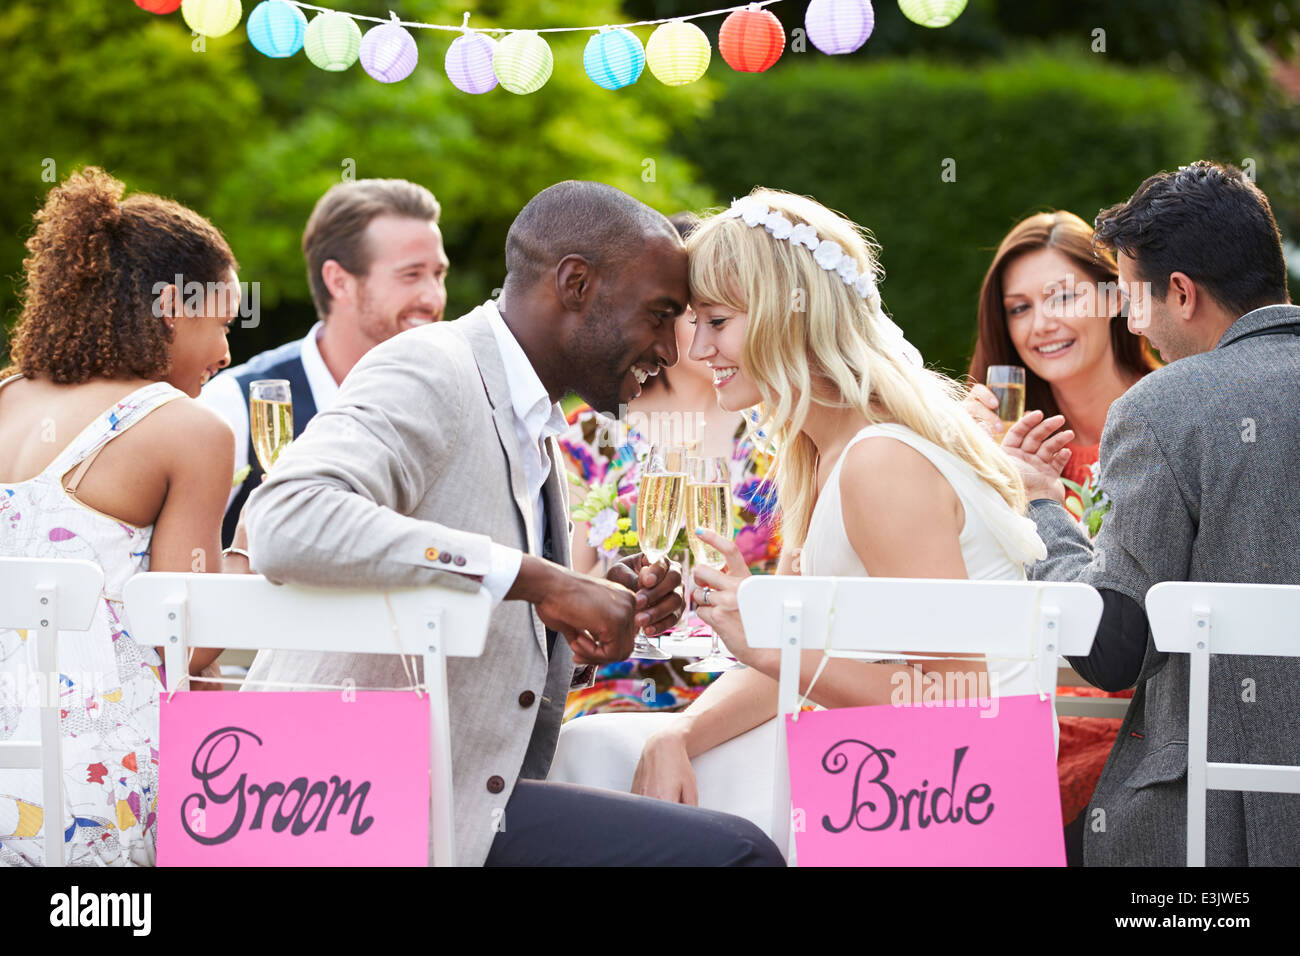 Bride And Groom Enjoying Meal At Wedding Reception - Stock Image